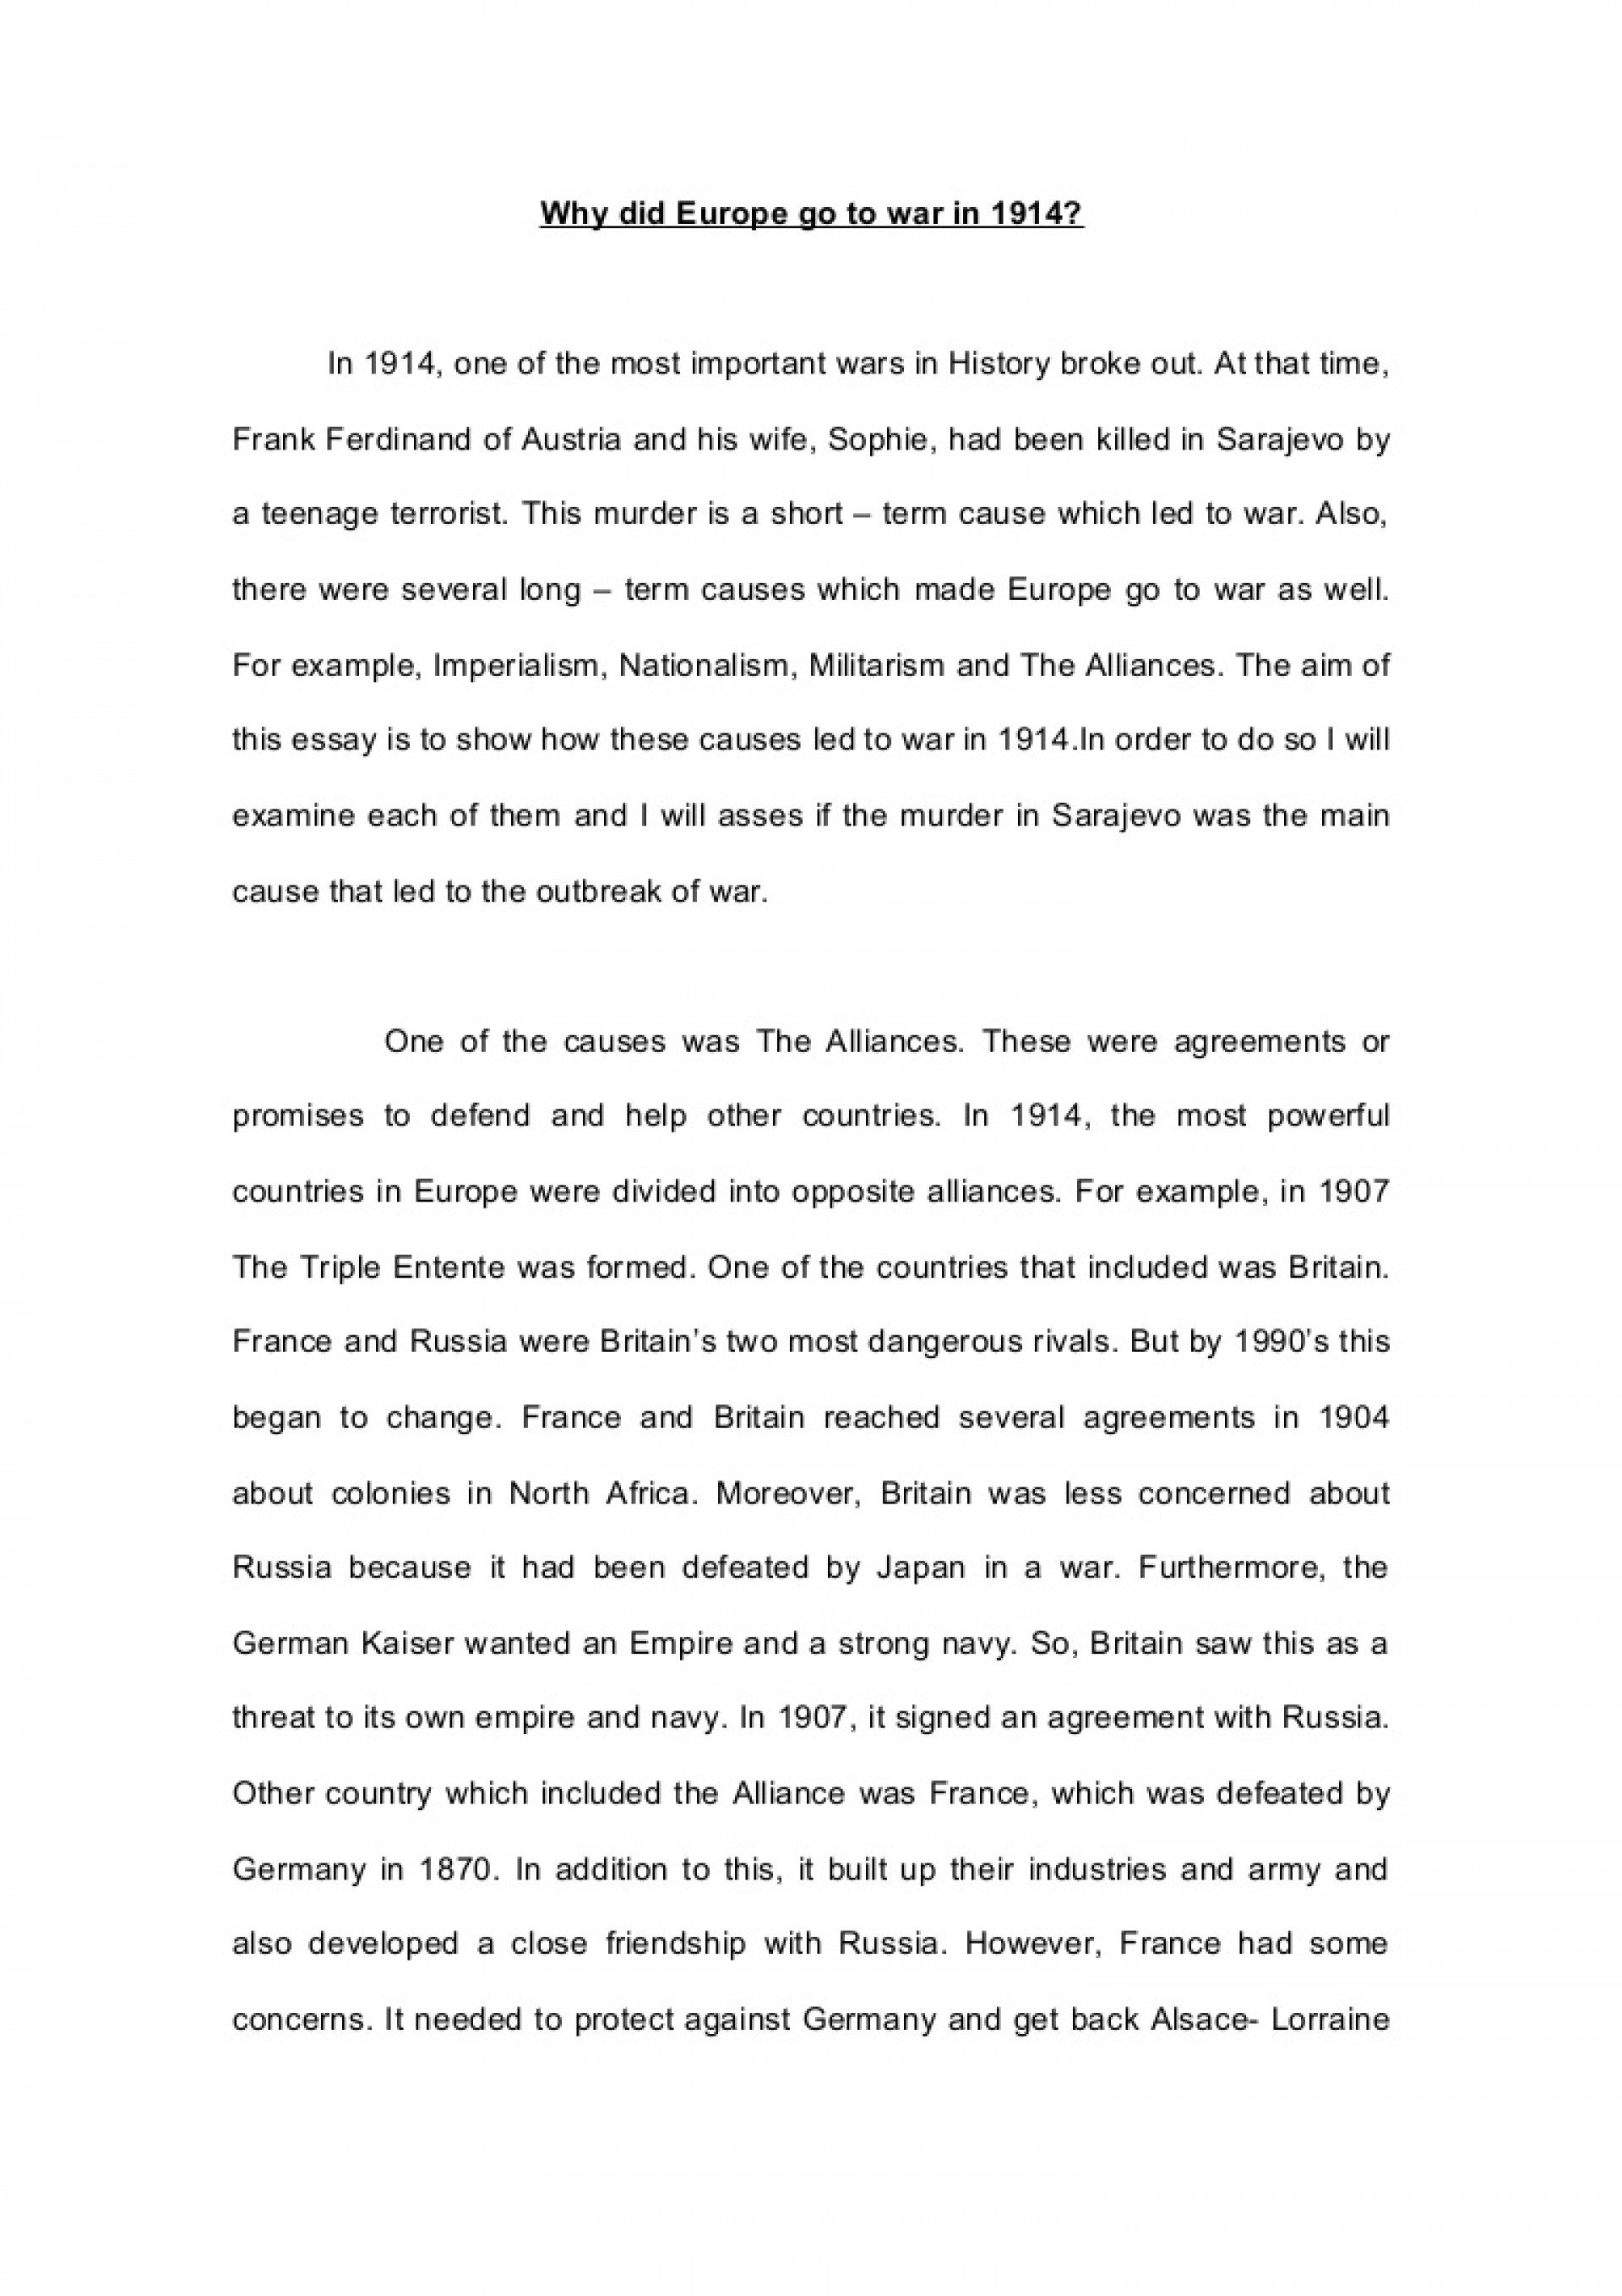 001 Essay Example Ww1 Whydideuropegotowarin1914essay Phpapp01 Thumbnail Impressive World War 1 Causes Conclusion Topics 1920